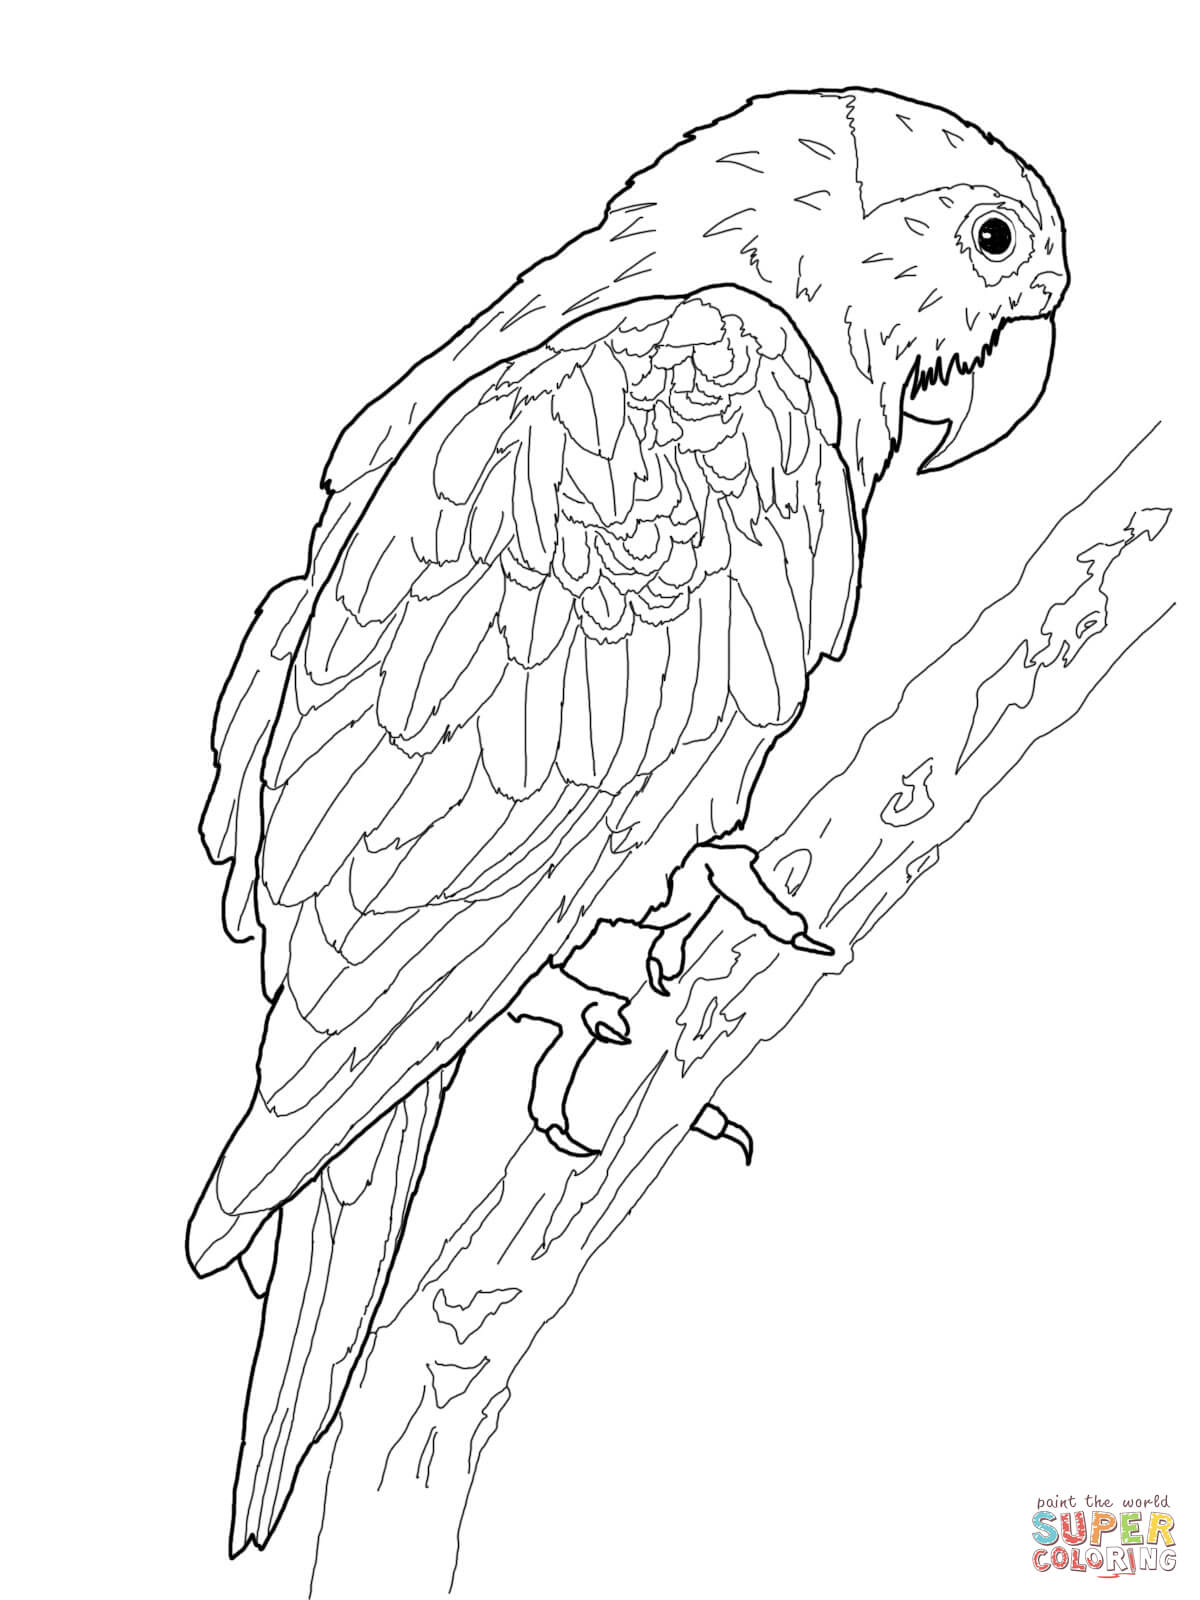 King Parrot coloring #12, Download drawings